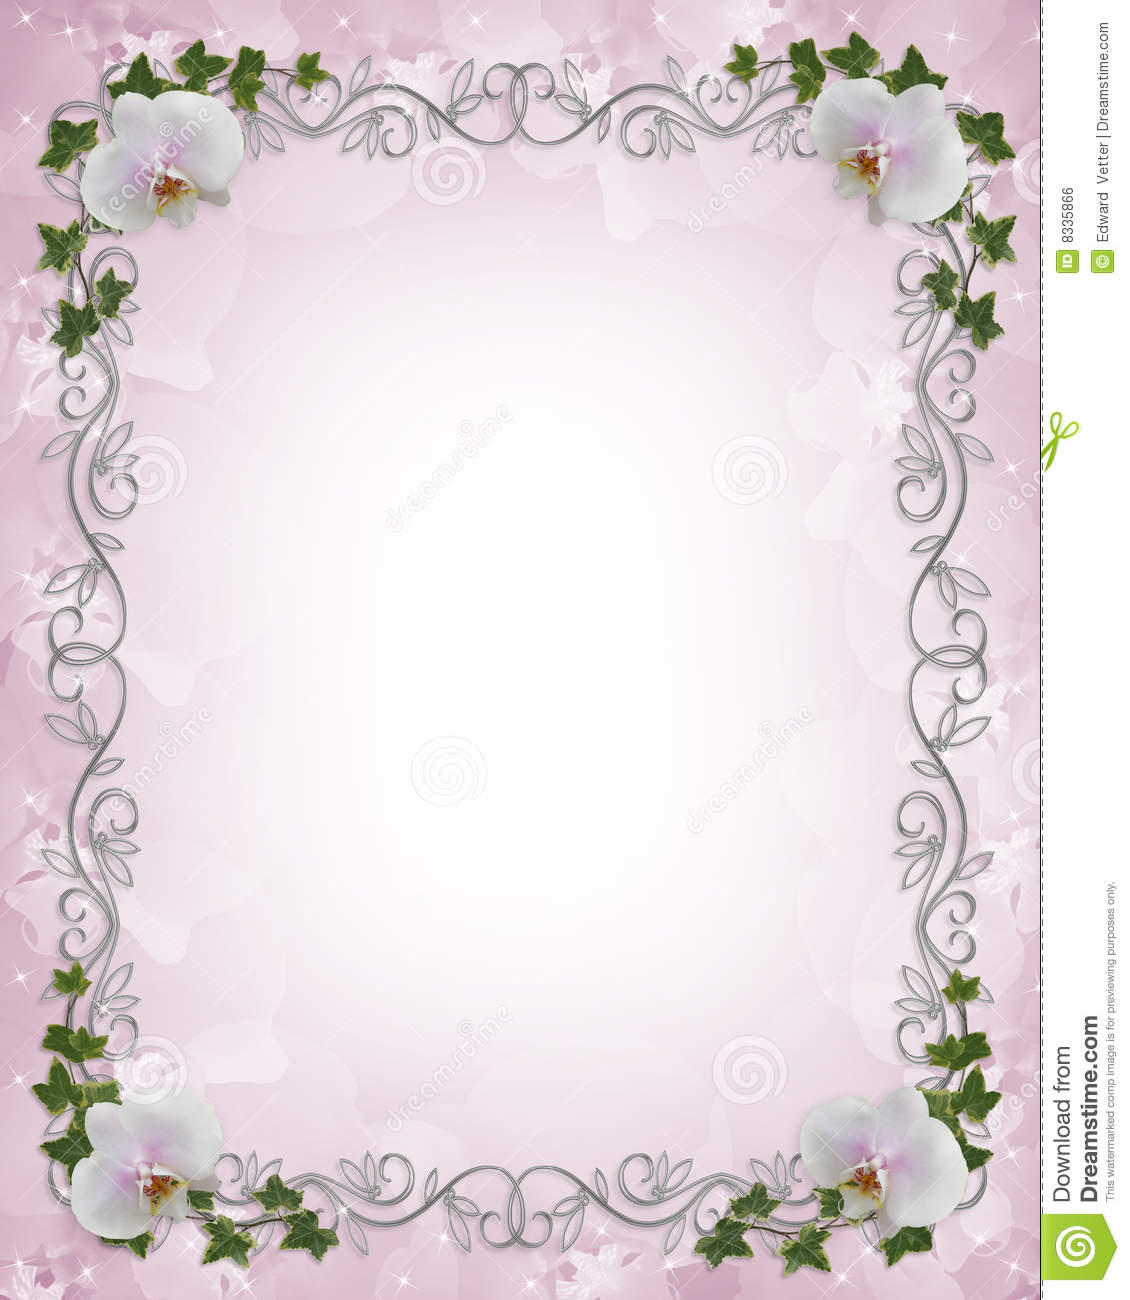 Wedding Invitation Border Orchids Ivy Stock Illustration ...